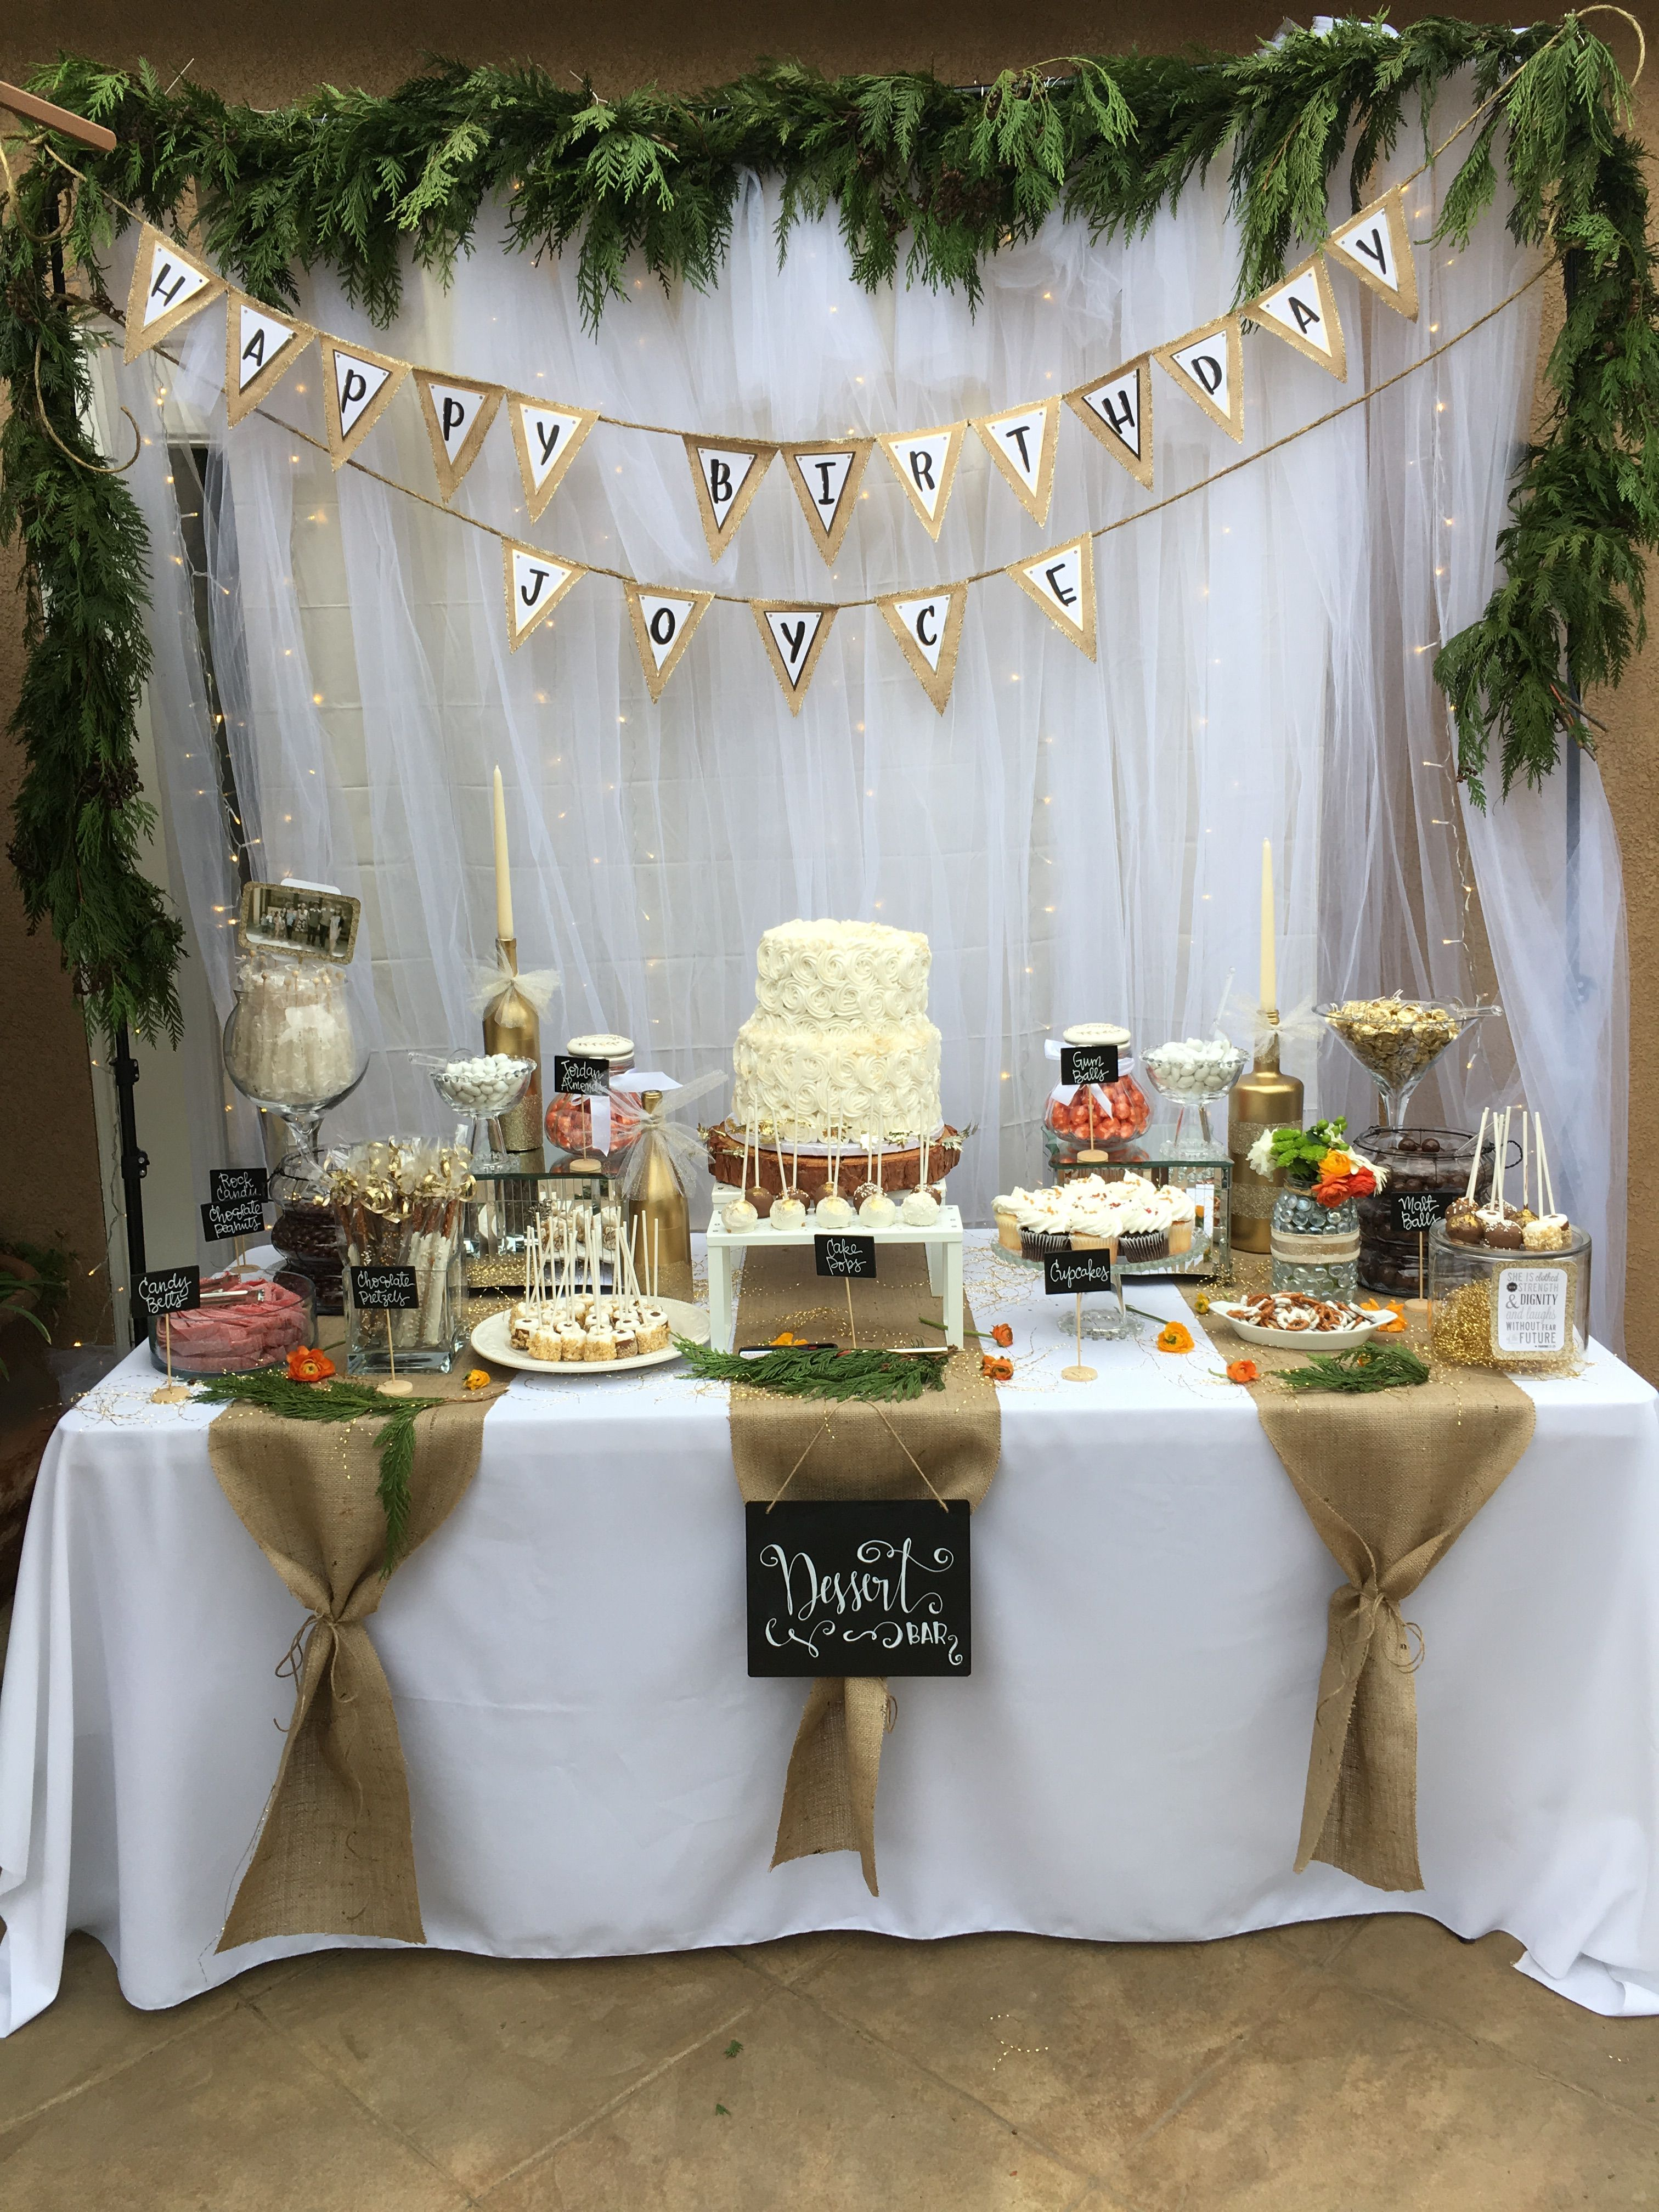 Candy Table With Images Rustic Birthday Parties Birthday